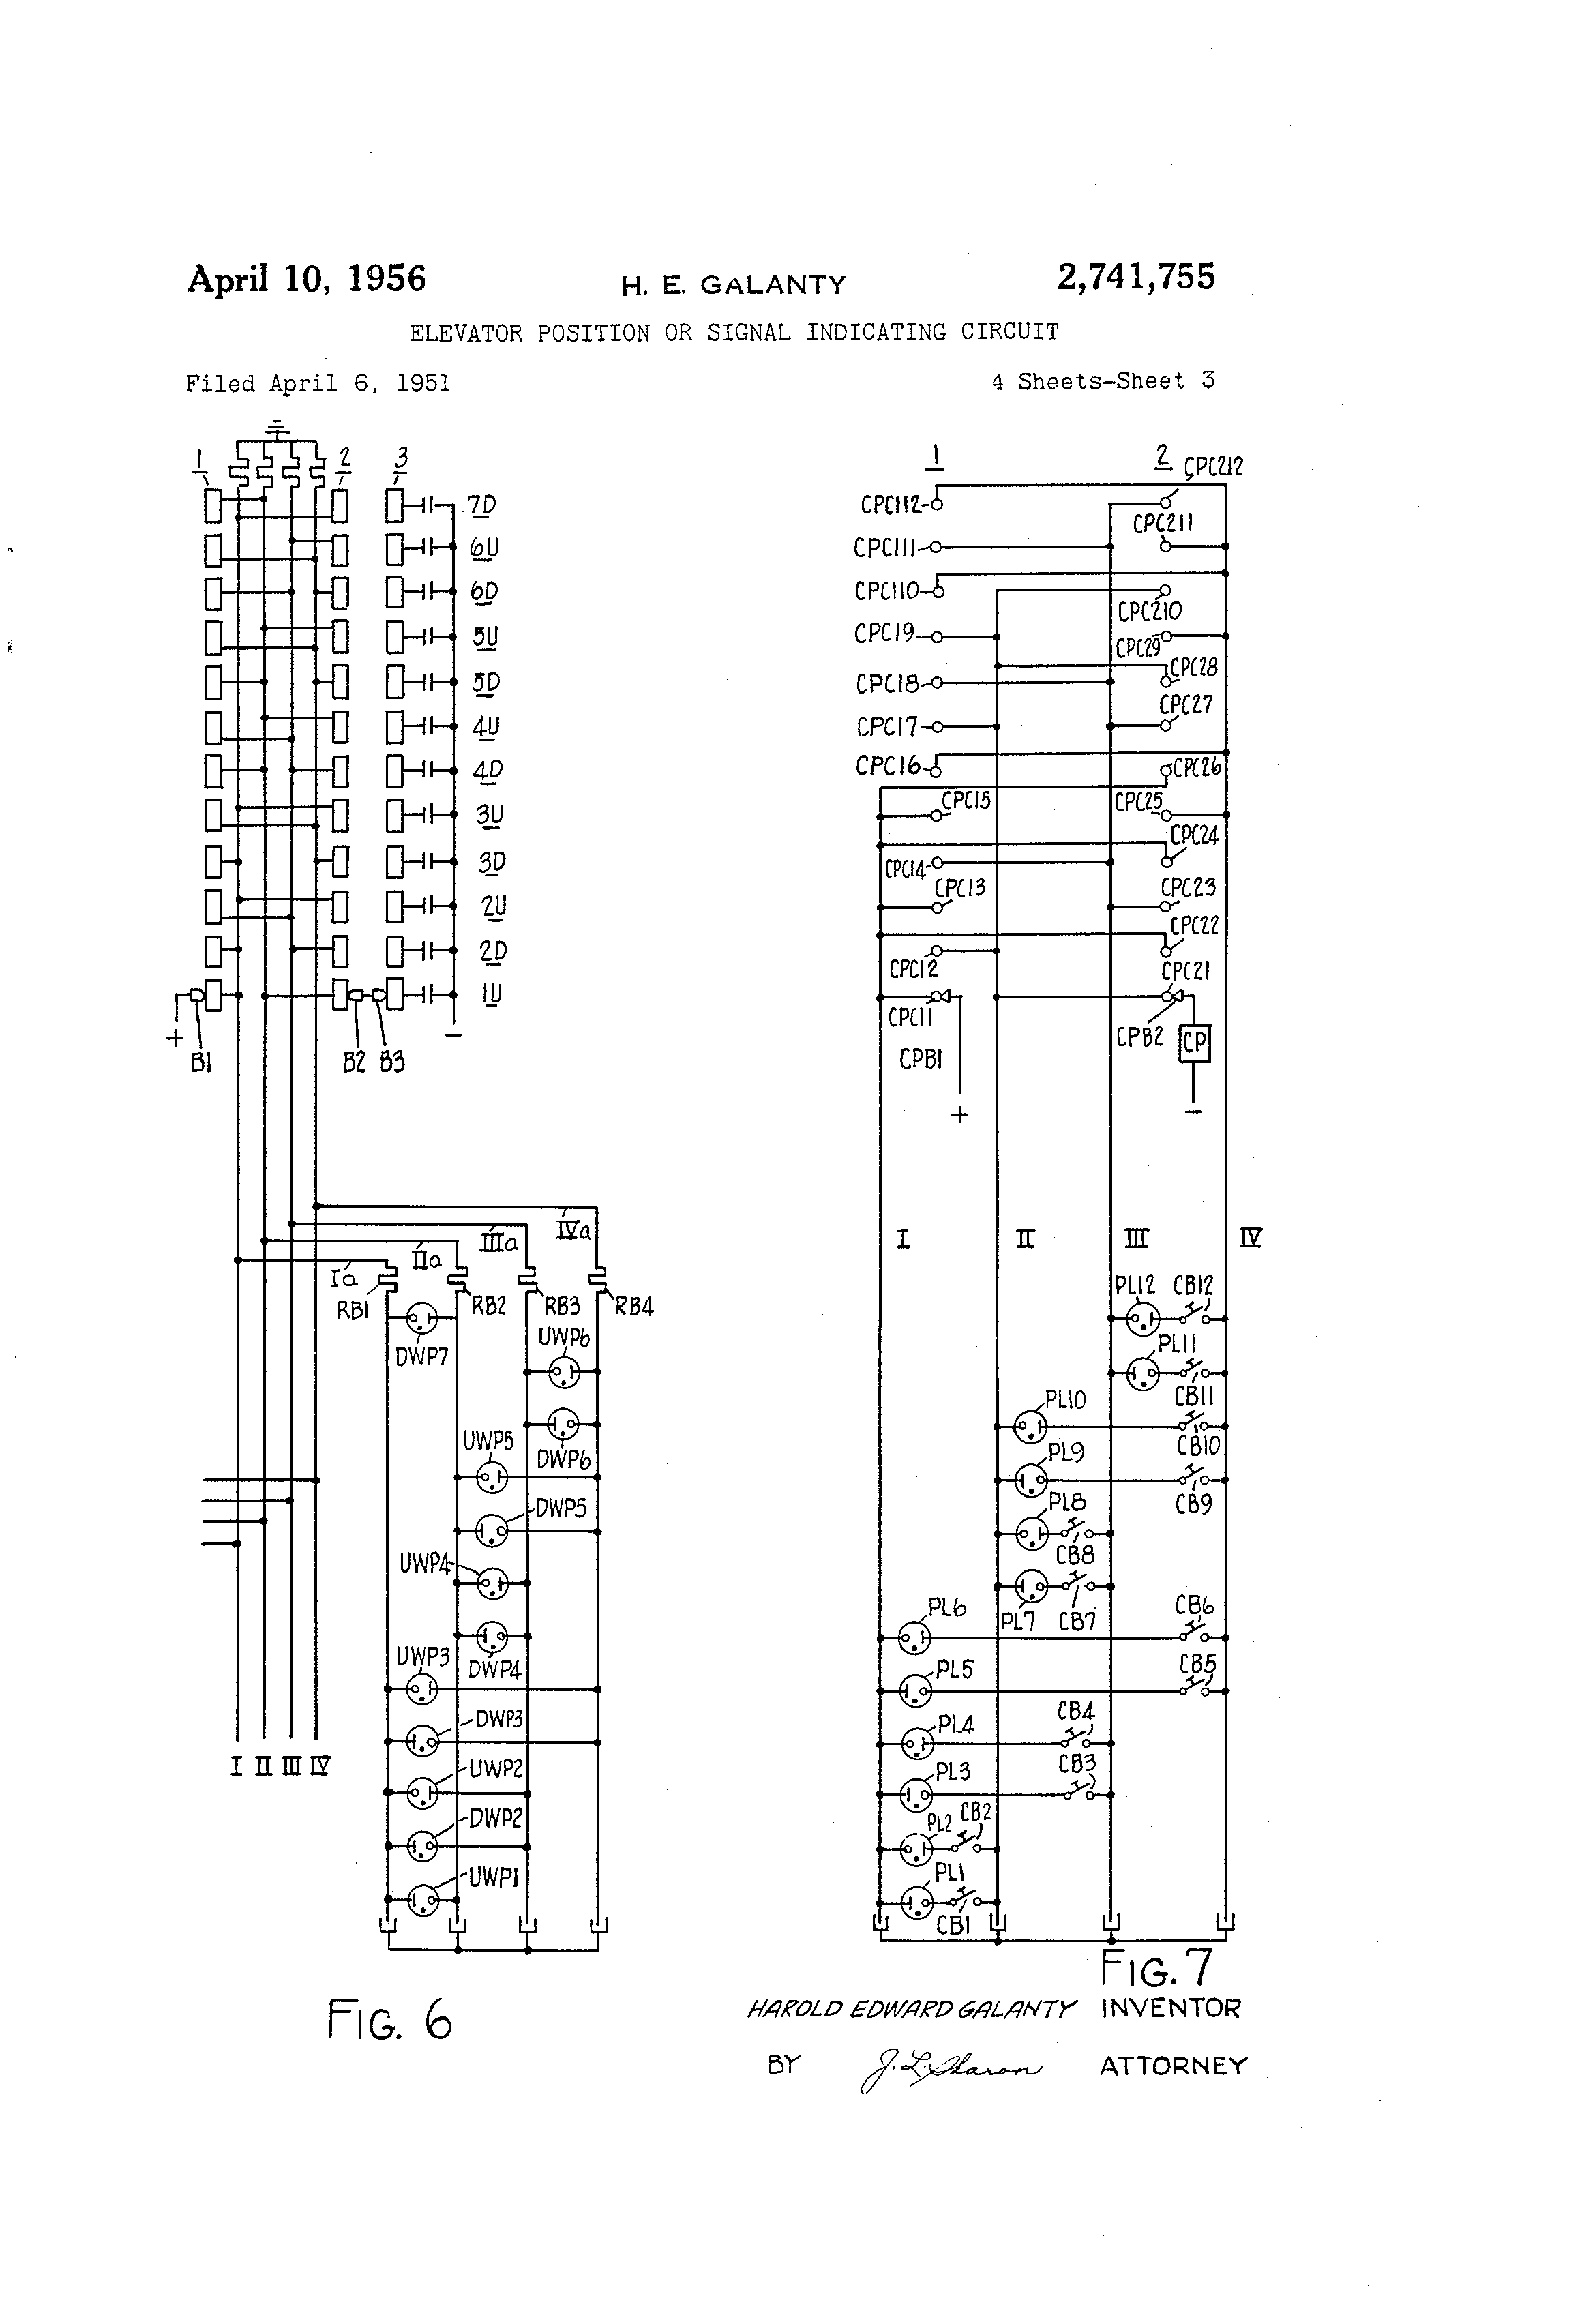 patent us2741755 - elevator position or signal indicating circuit